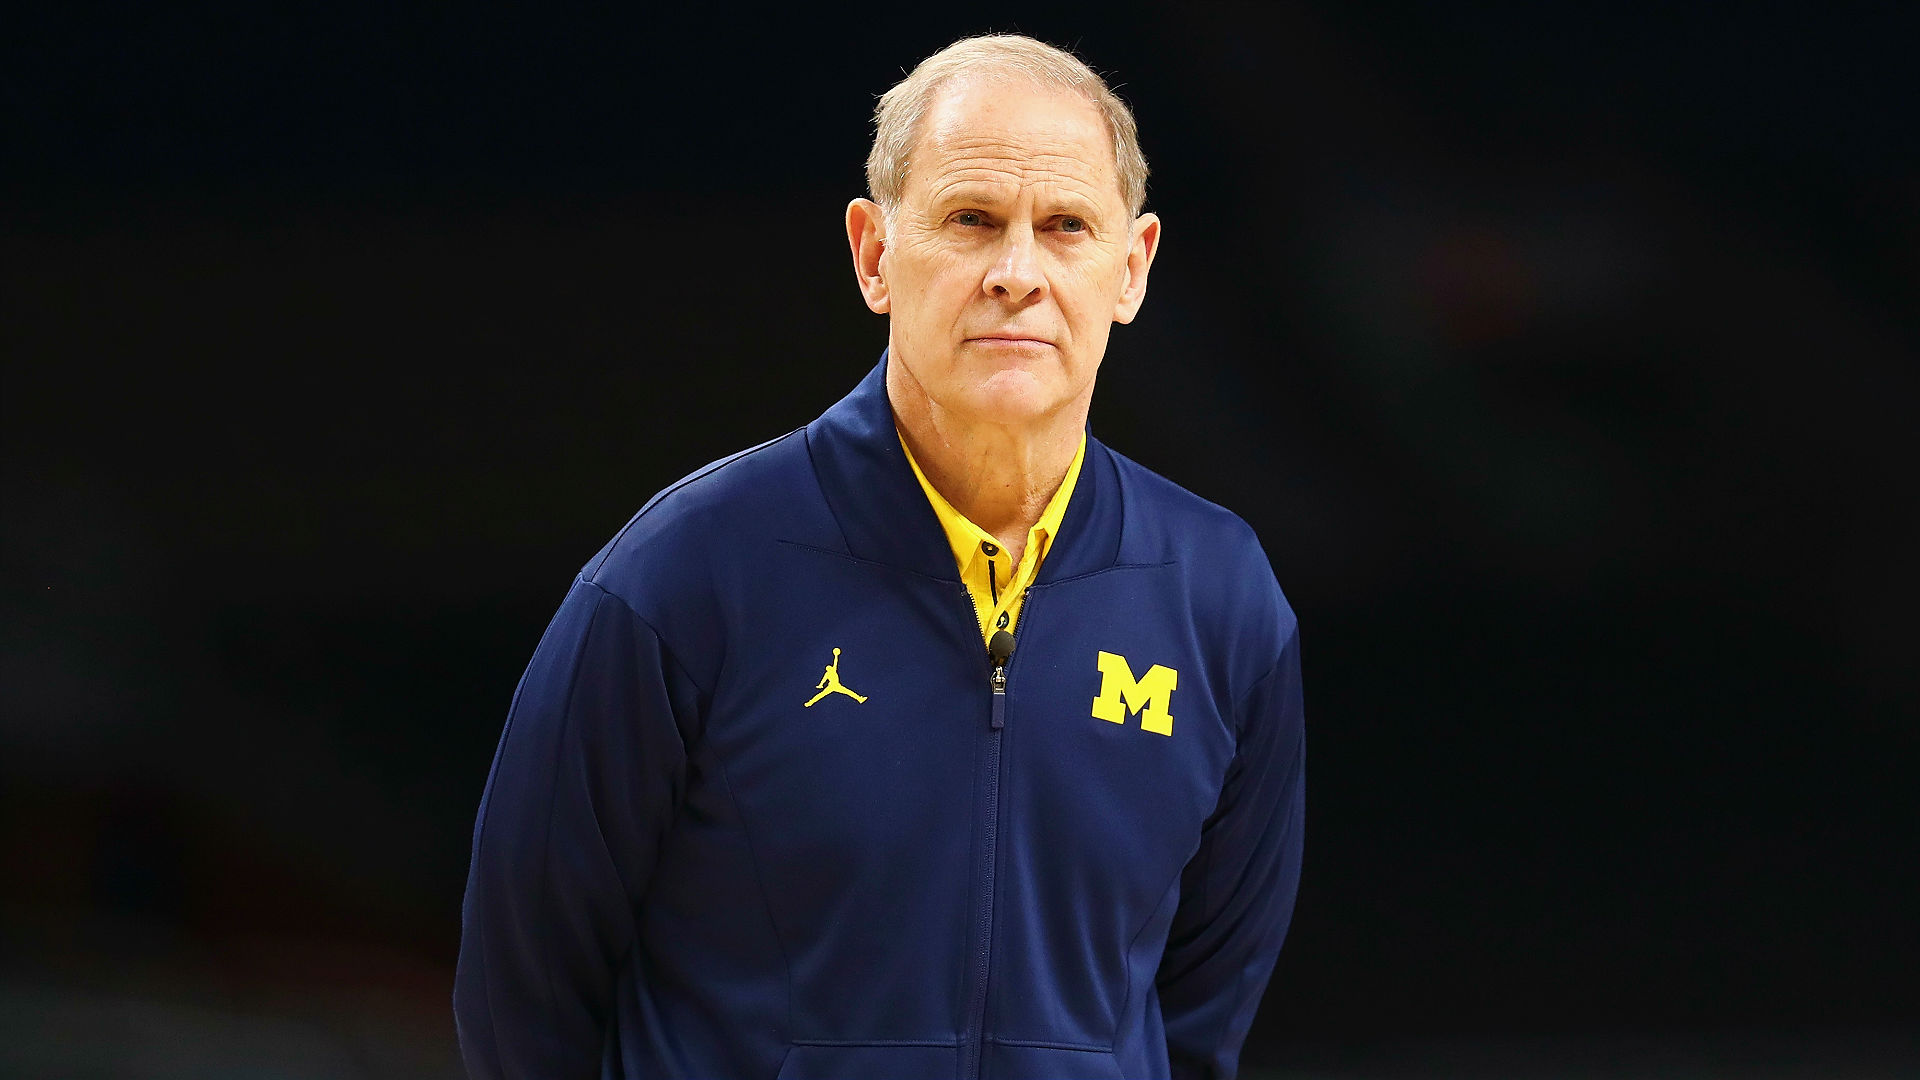 john beilein - photo #6